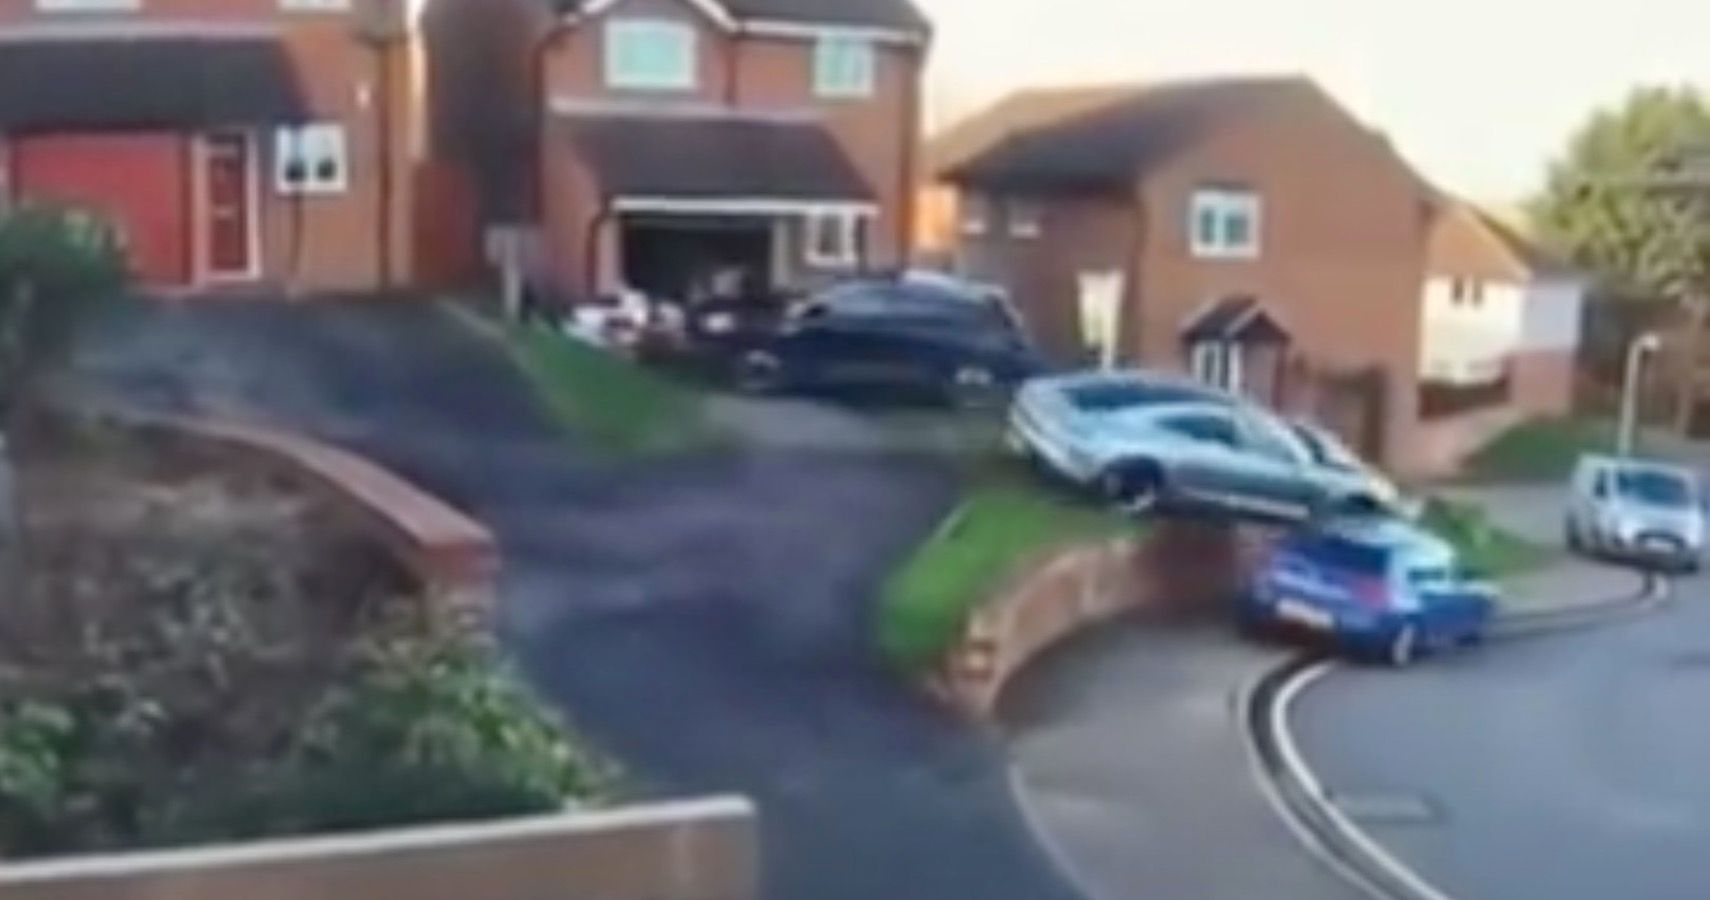 Porsche Driver's Parking Attempt Goes Horribly Wrong, Takes Out Two Cars